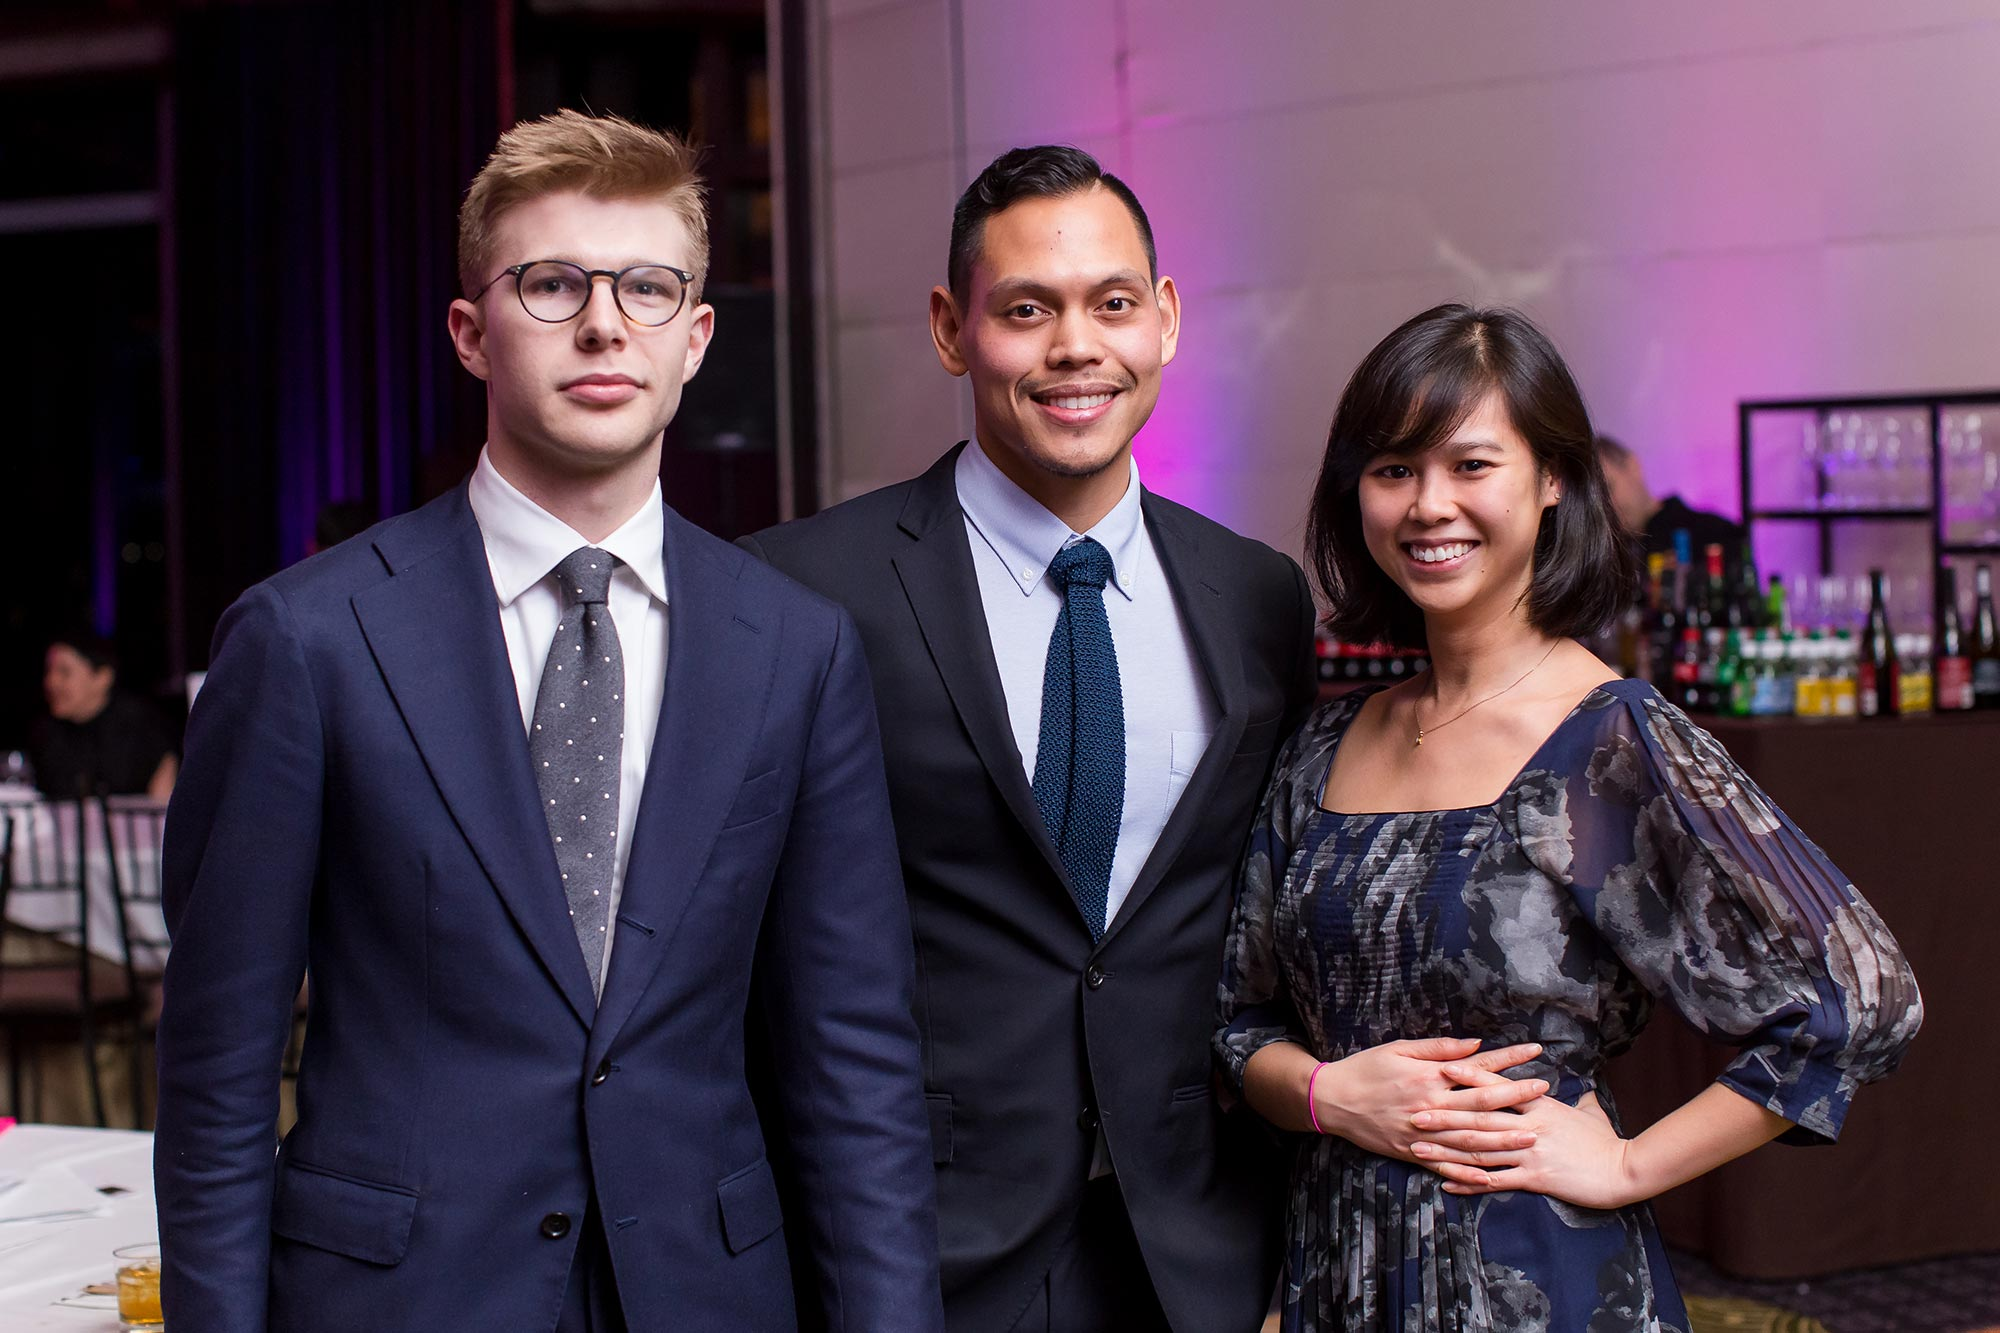 Ronnie Mewengkang poses with colleagues Aaron Pope and Joyce Li at the Vilcek Foundation awards gala.